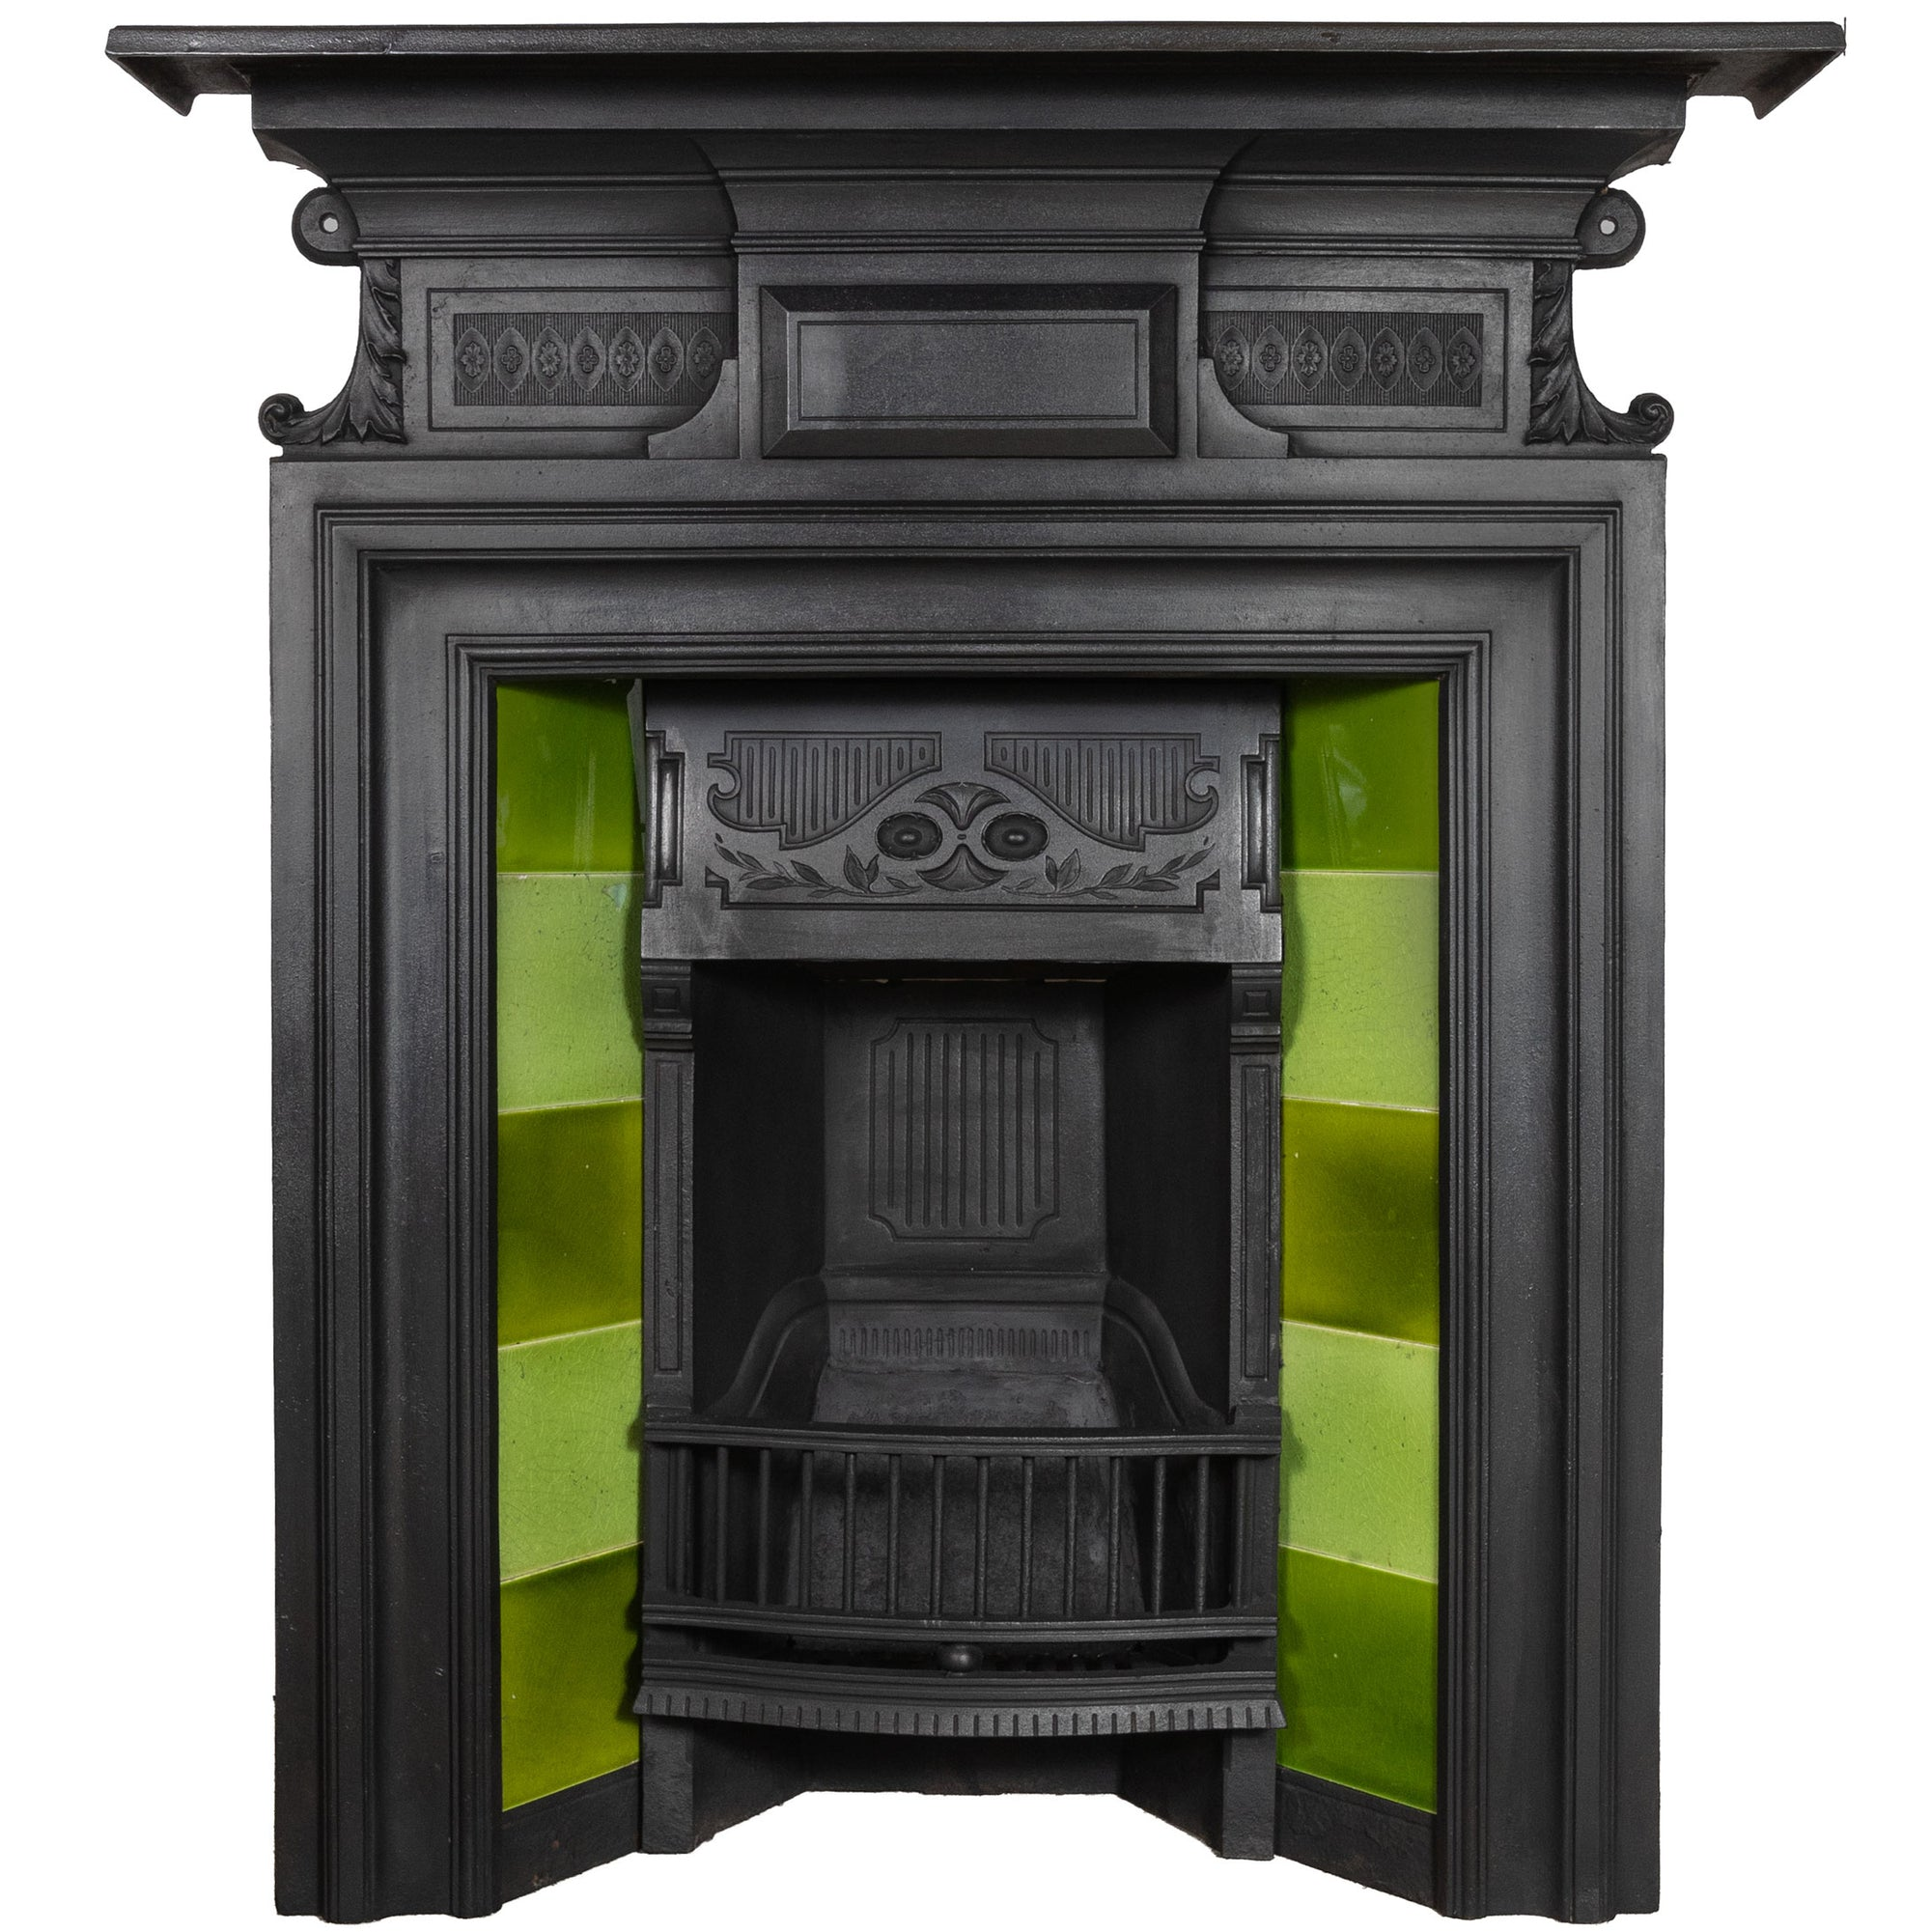 Antique Cast Iron Tiled Combination Fireplace - architectural-forum